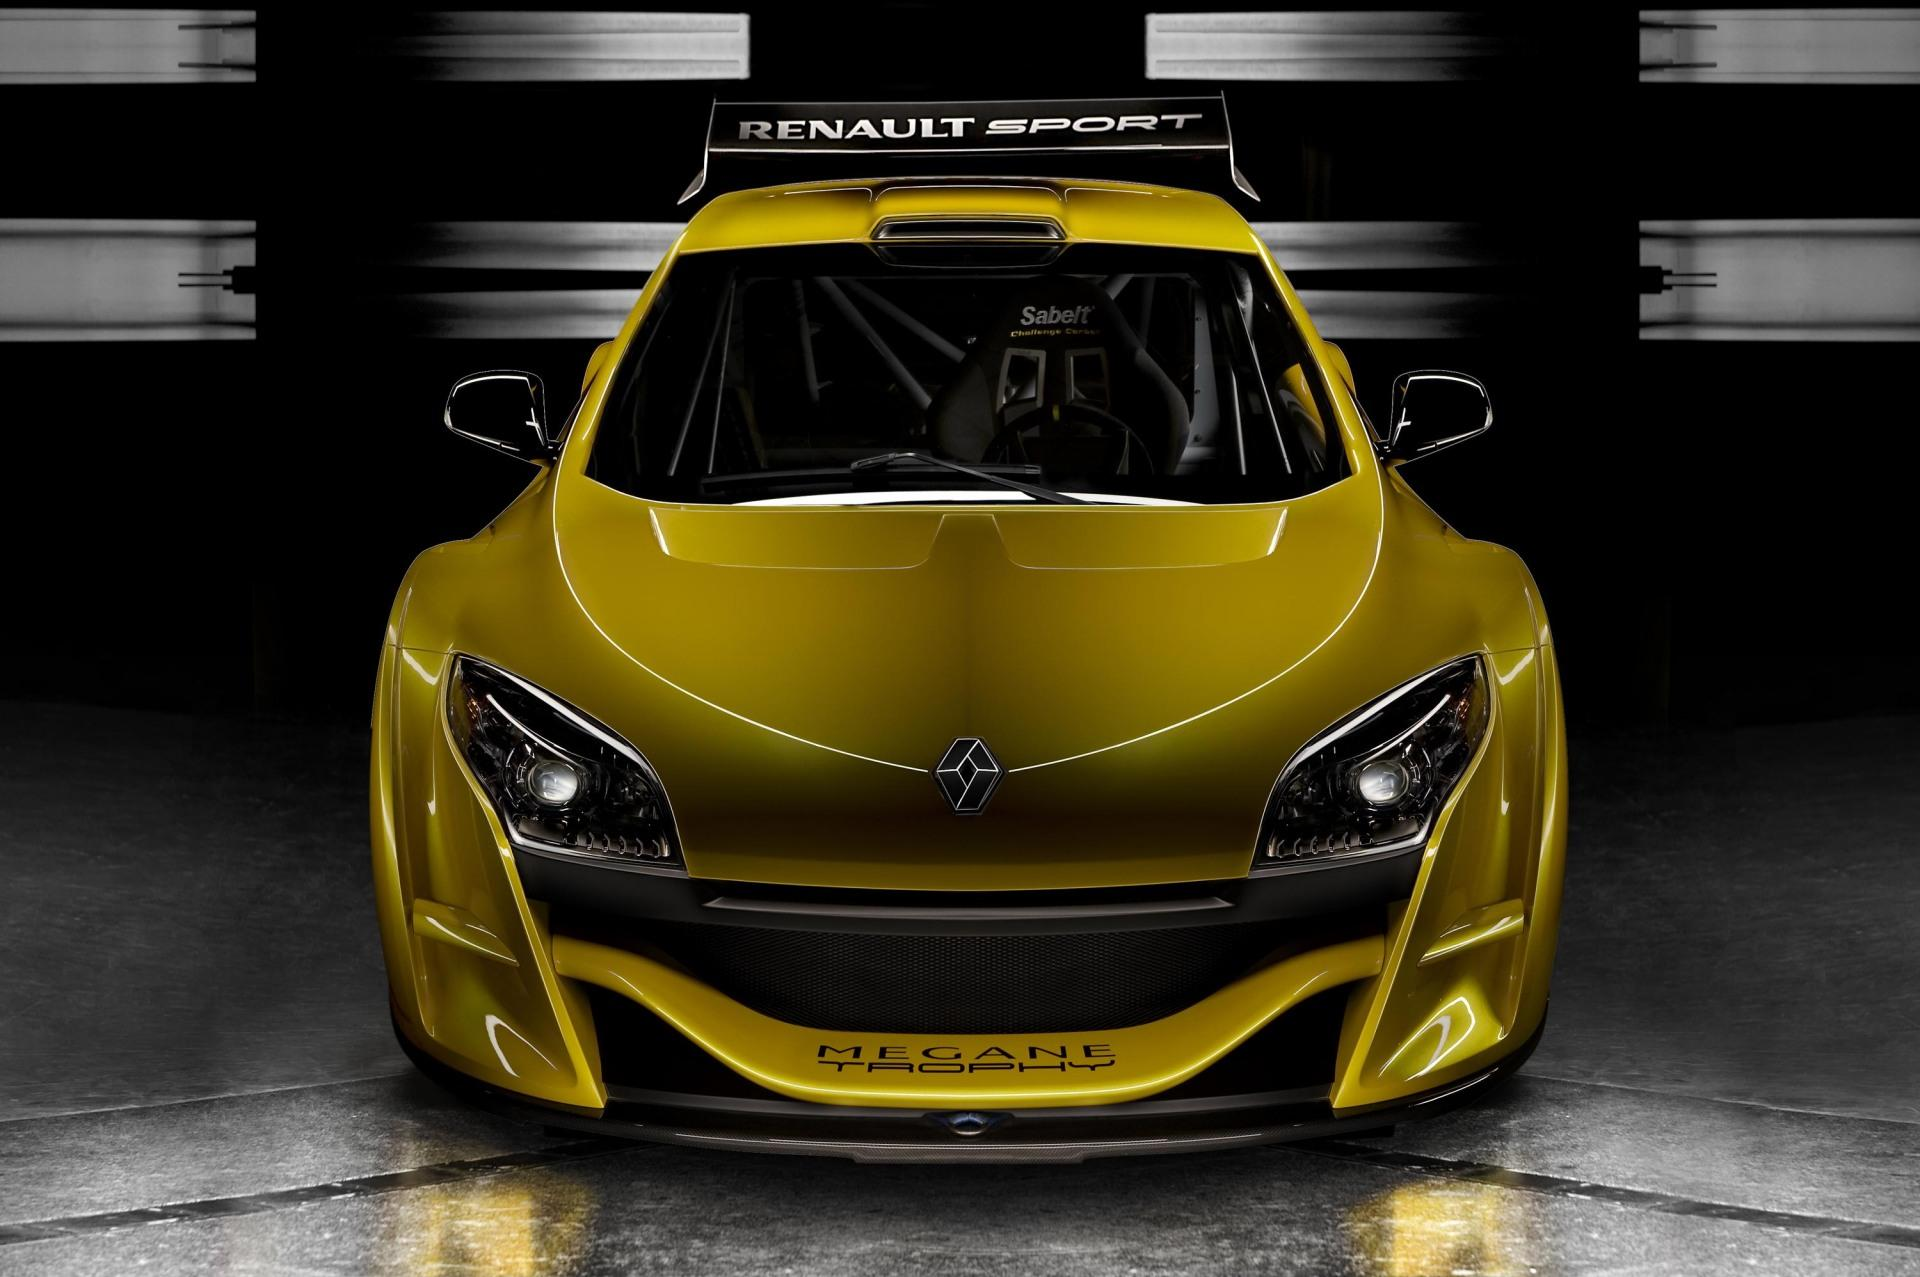 F1 Race 2009 Renault Megane Trophy News And Information, Research